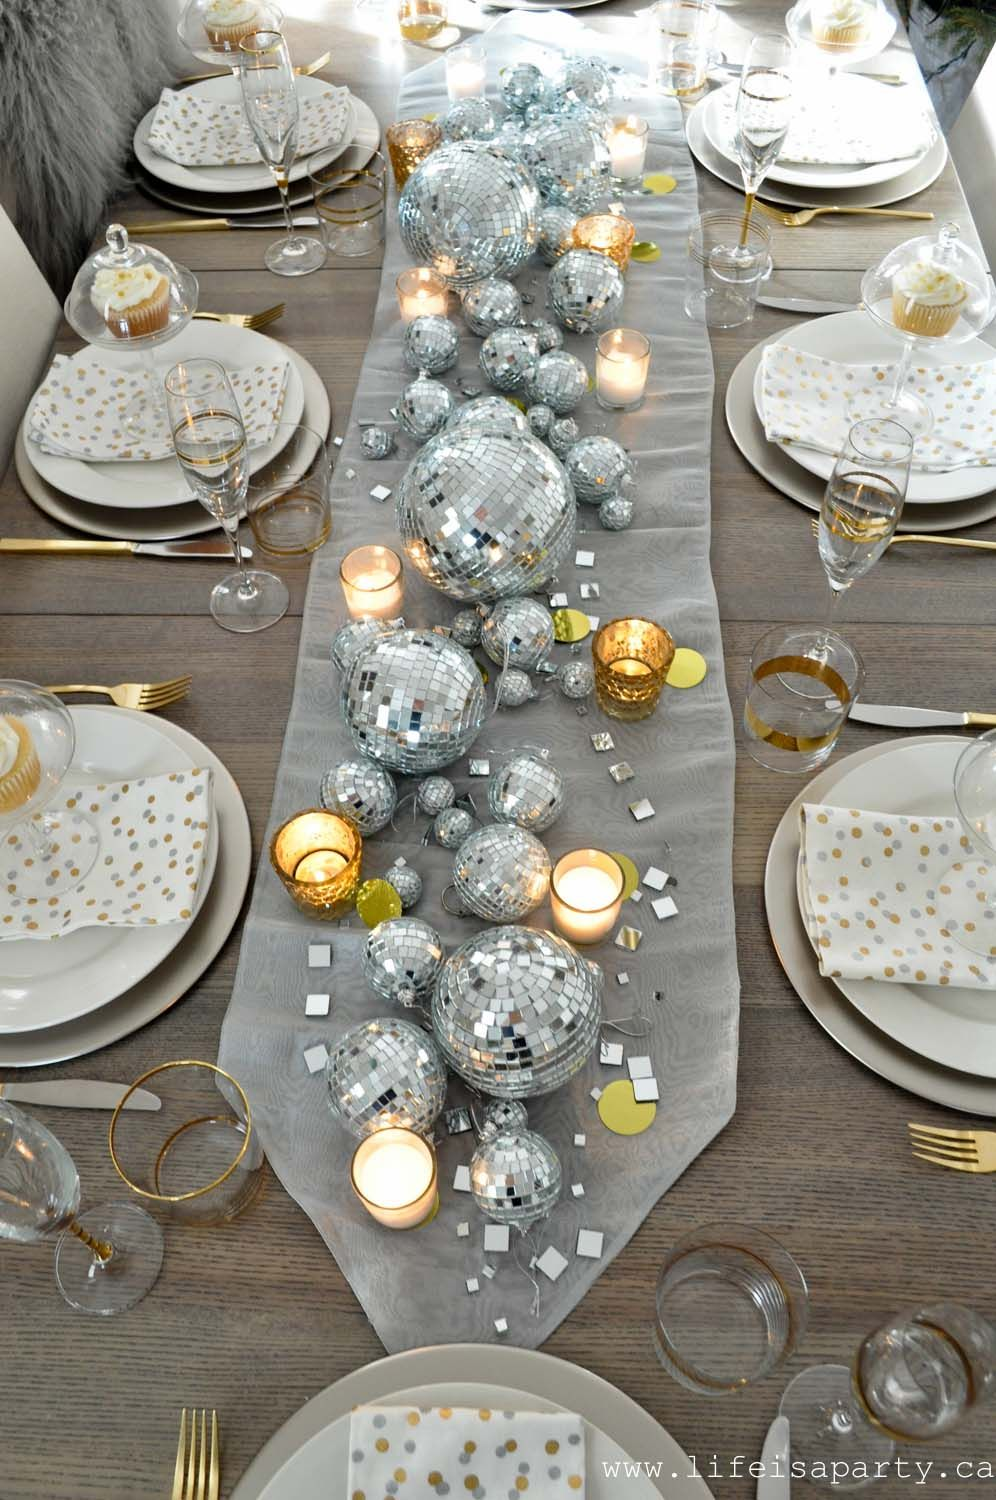 15 Fabulous Decor Ideas For The Ultimate New Year S Eve Party New Years Eve Decorations New Year Table New Years Eve Dinner